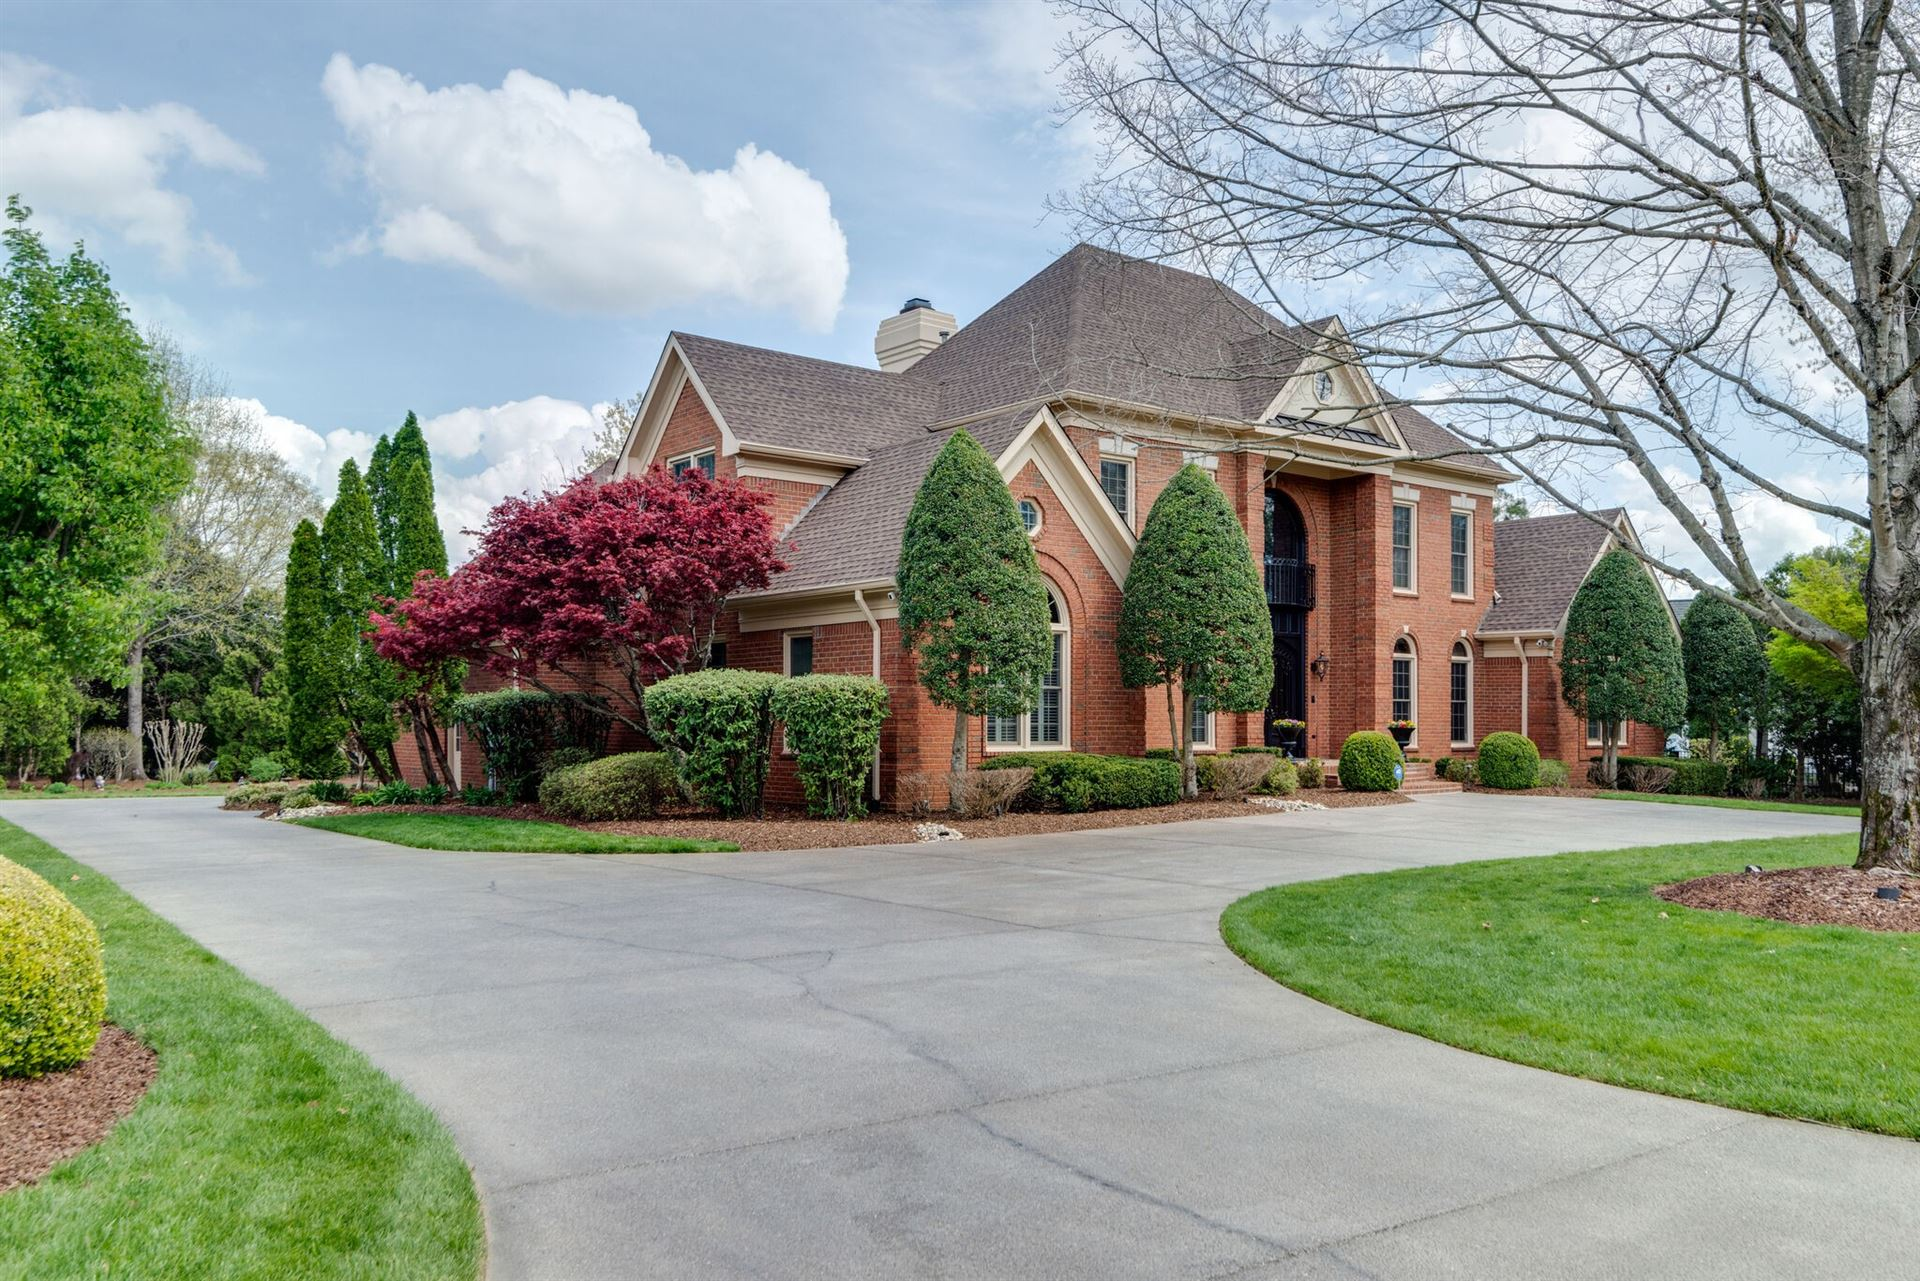 Photo of 5266 McGavock Rd, Brentwood, TN 37027 (MLS # 2243657)